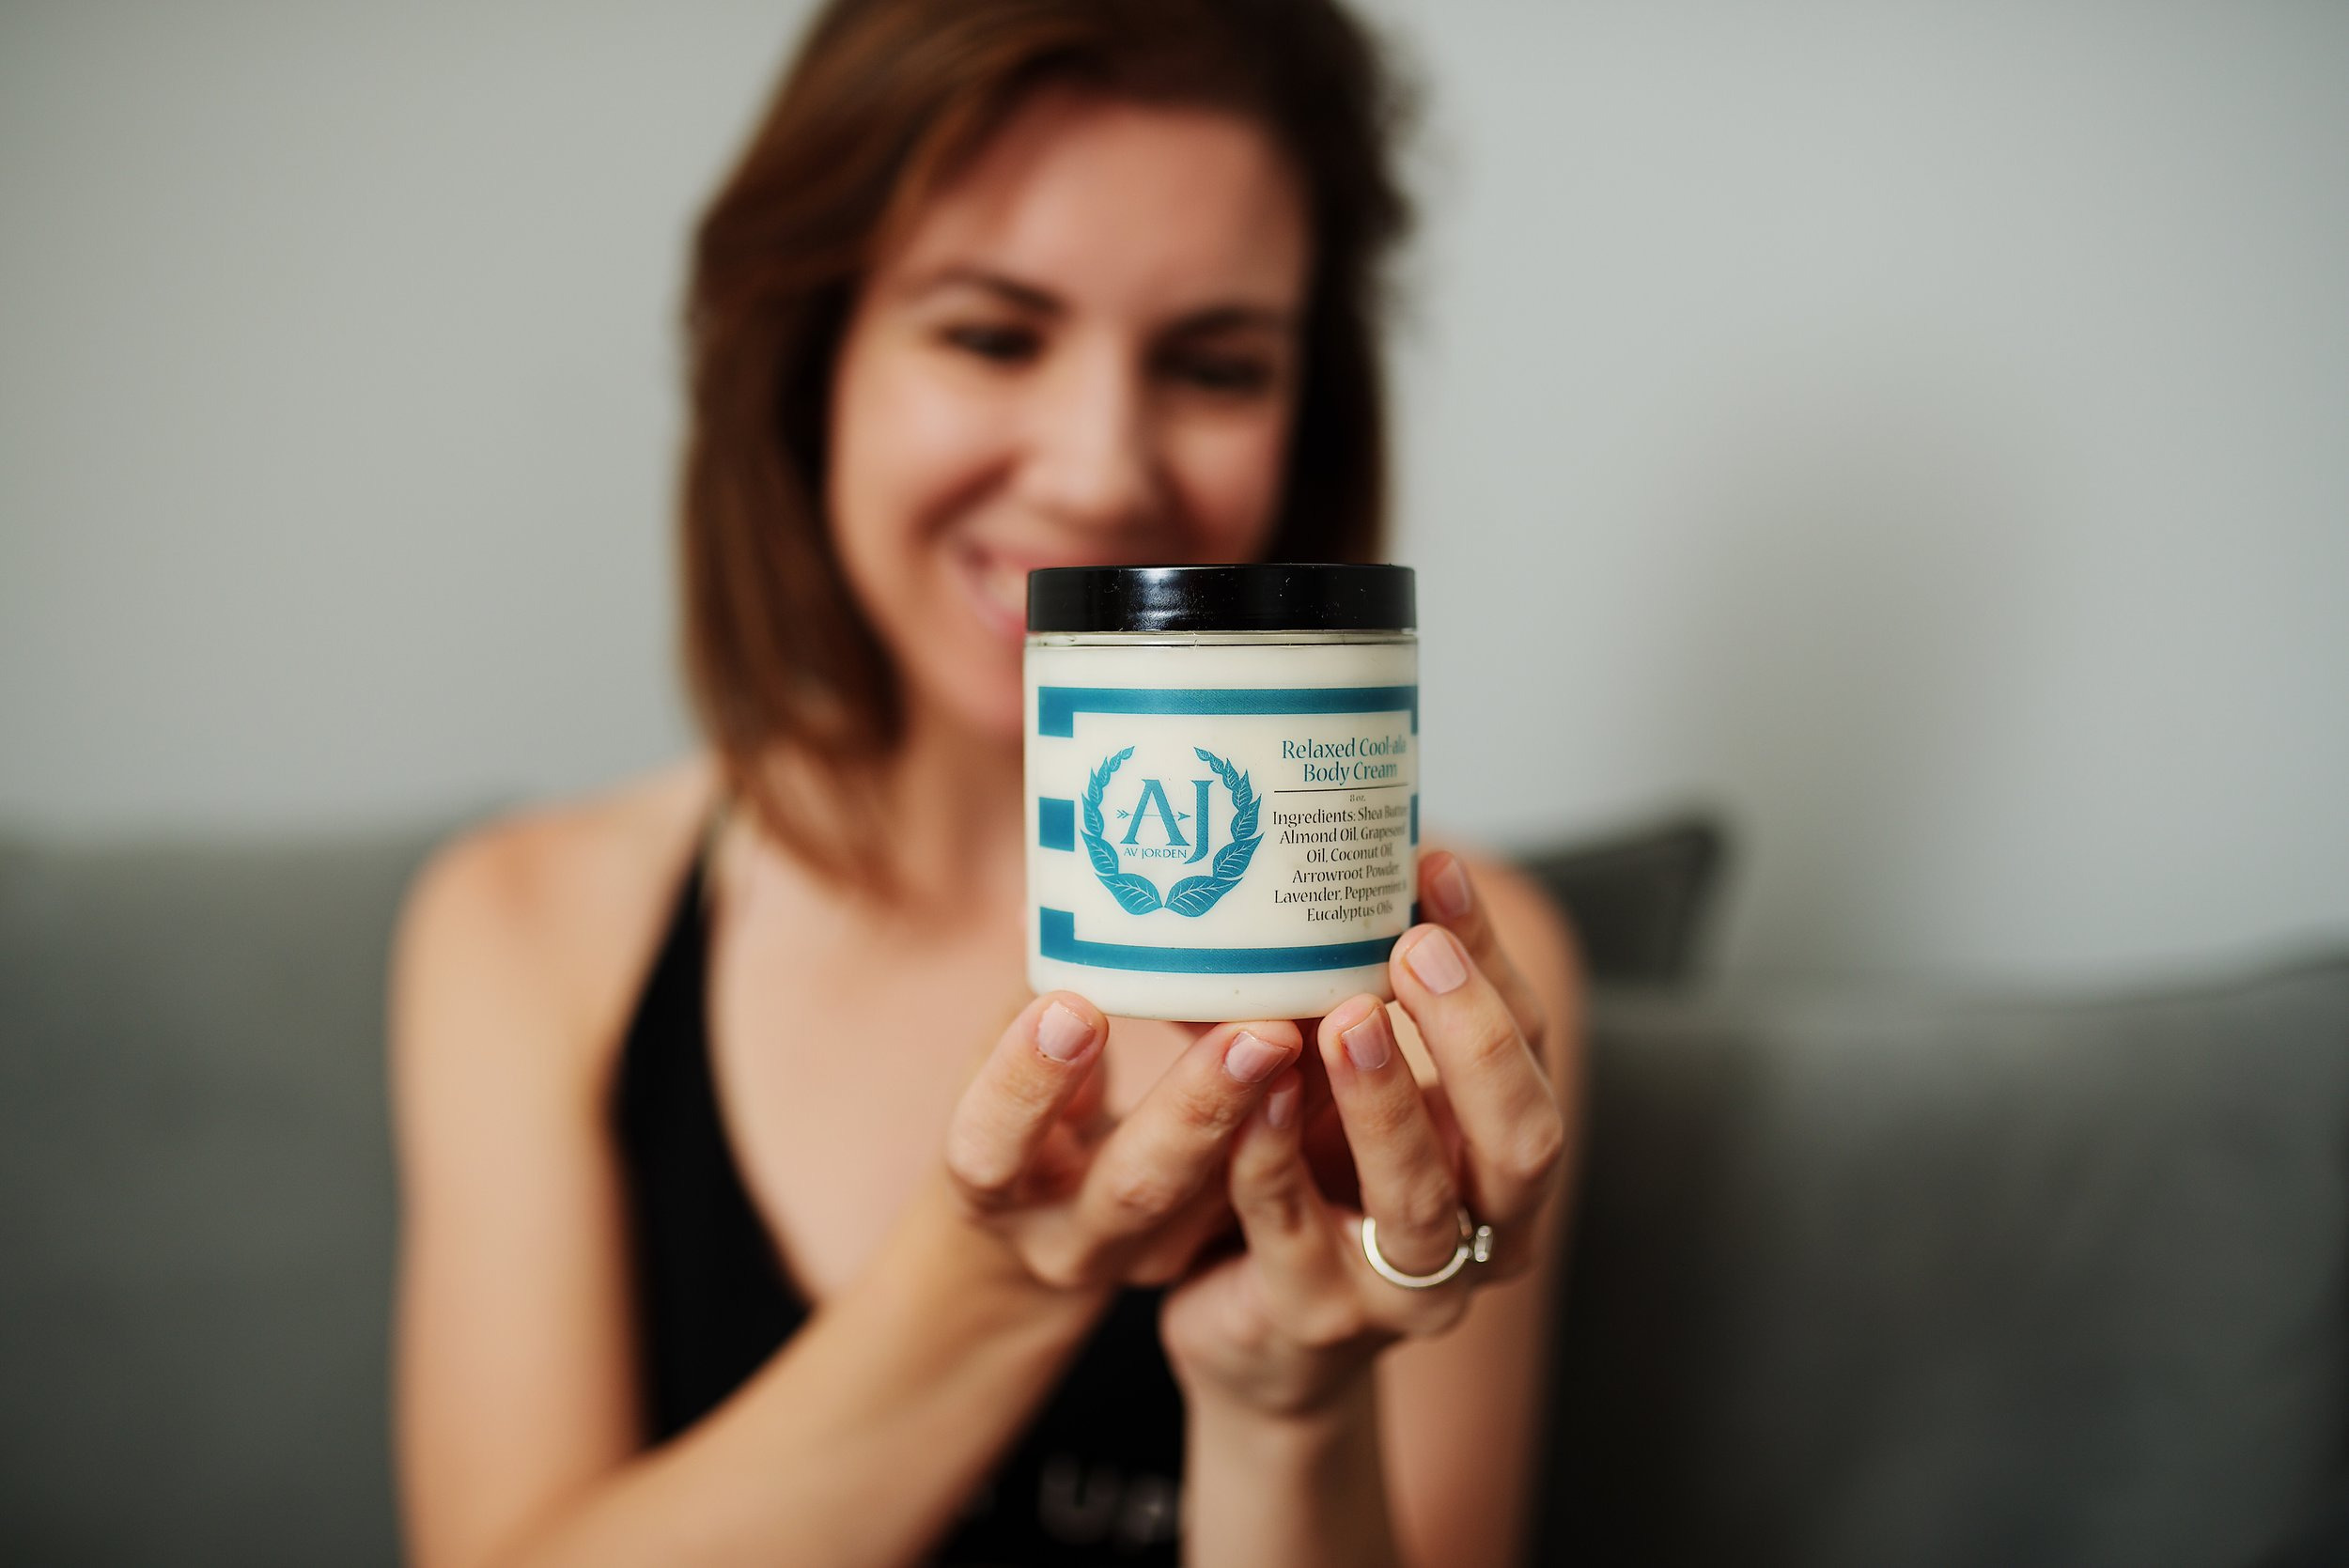 Jamie of  @mommyinflats  with her favorite body cream scent. She has thee cutest outfits and I really wish she could be my personal stylist. Photo credit:  @jfullerco